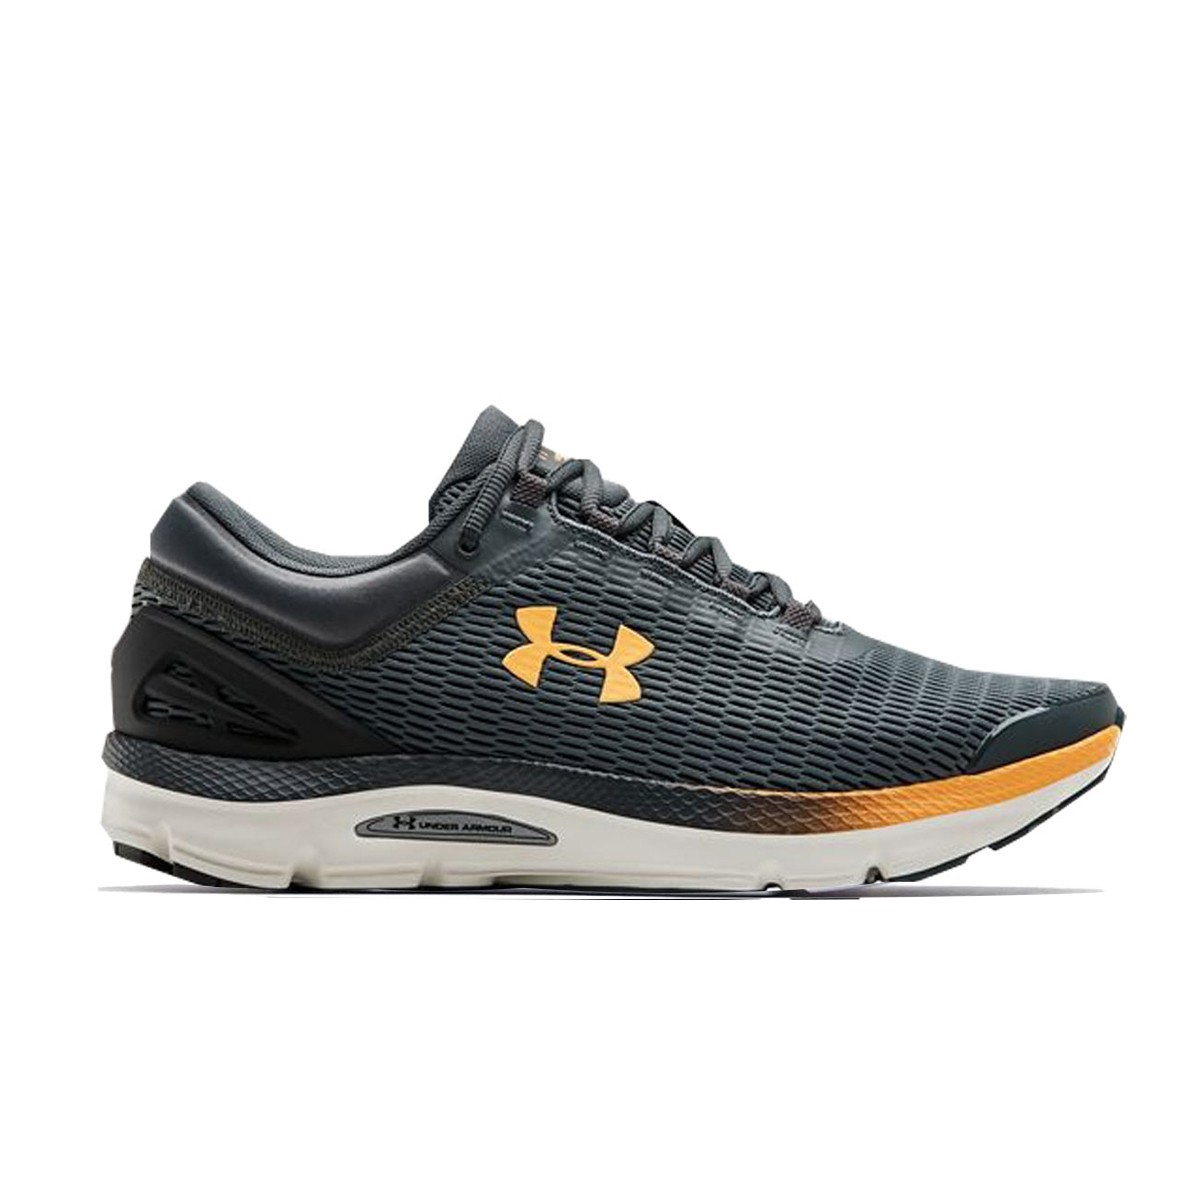 Under Armour Charged Intake 3 'Dark Grey' 3021229-103